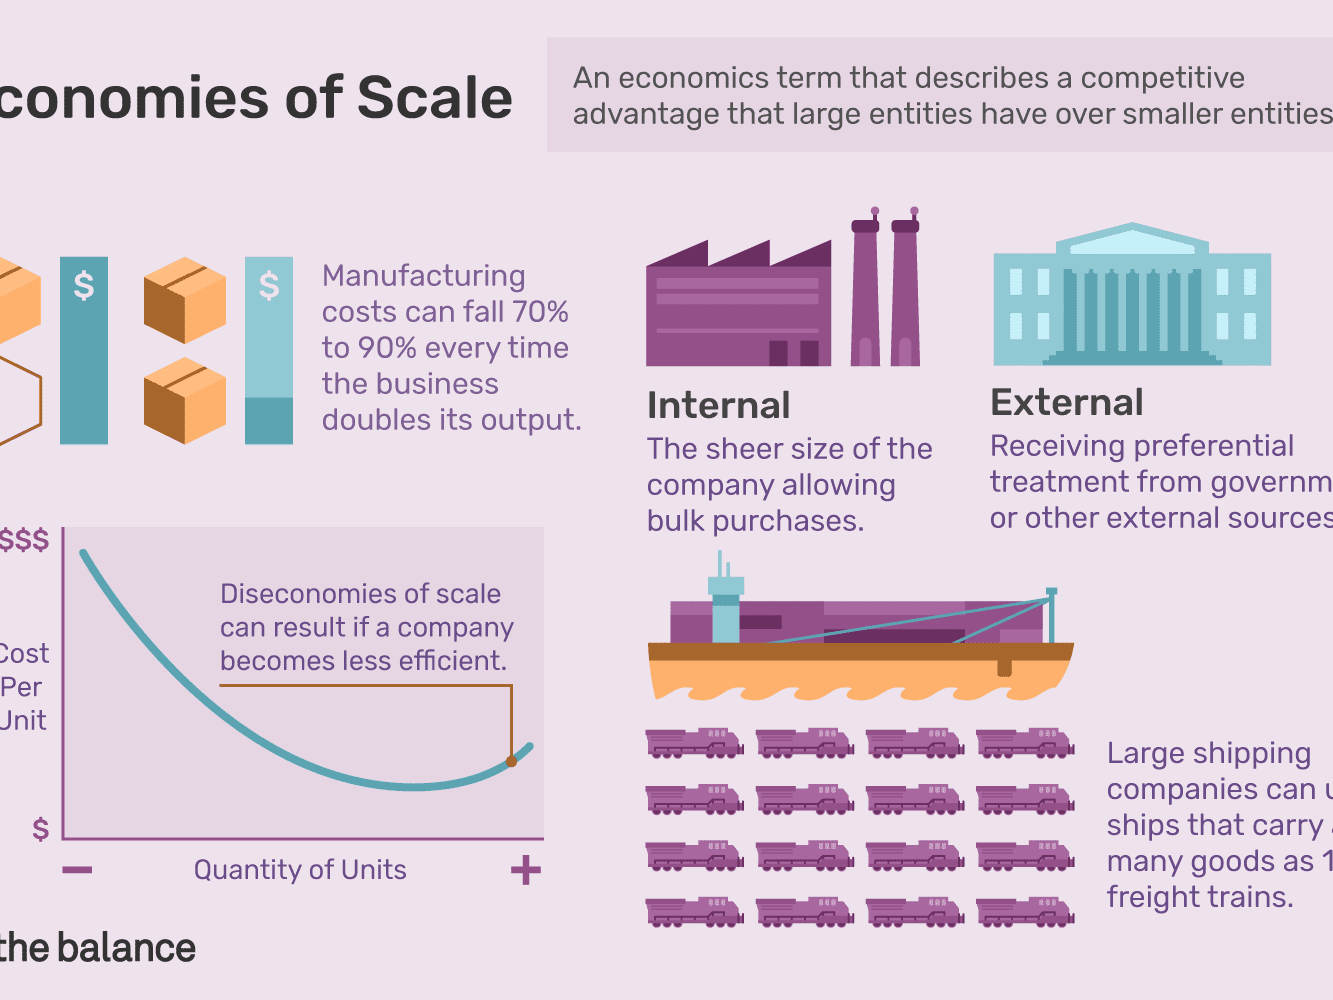 Economies of Scale: Definition, Types, Internal, External